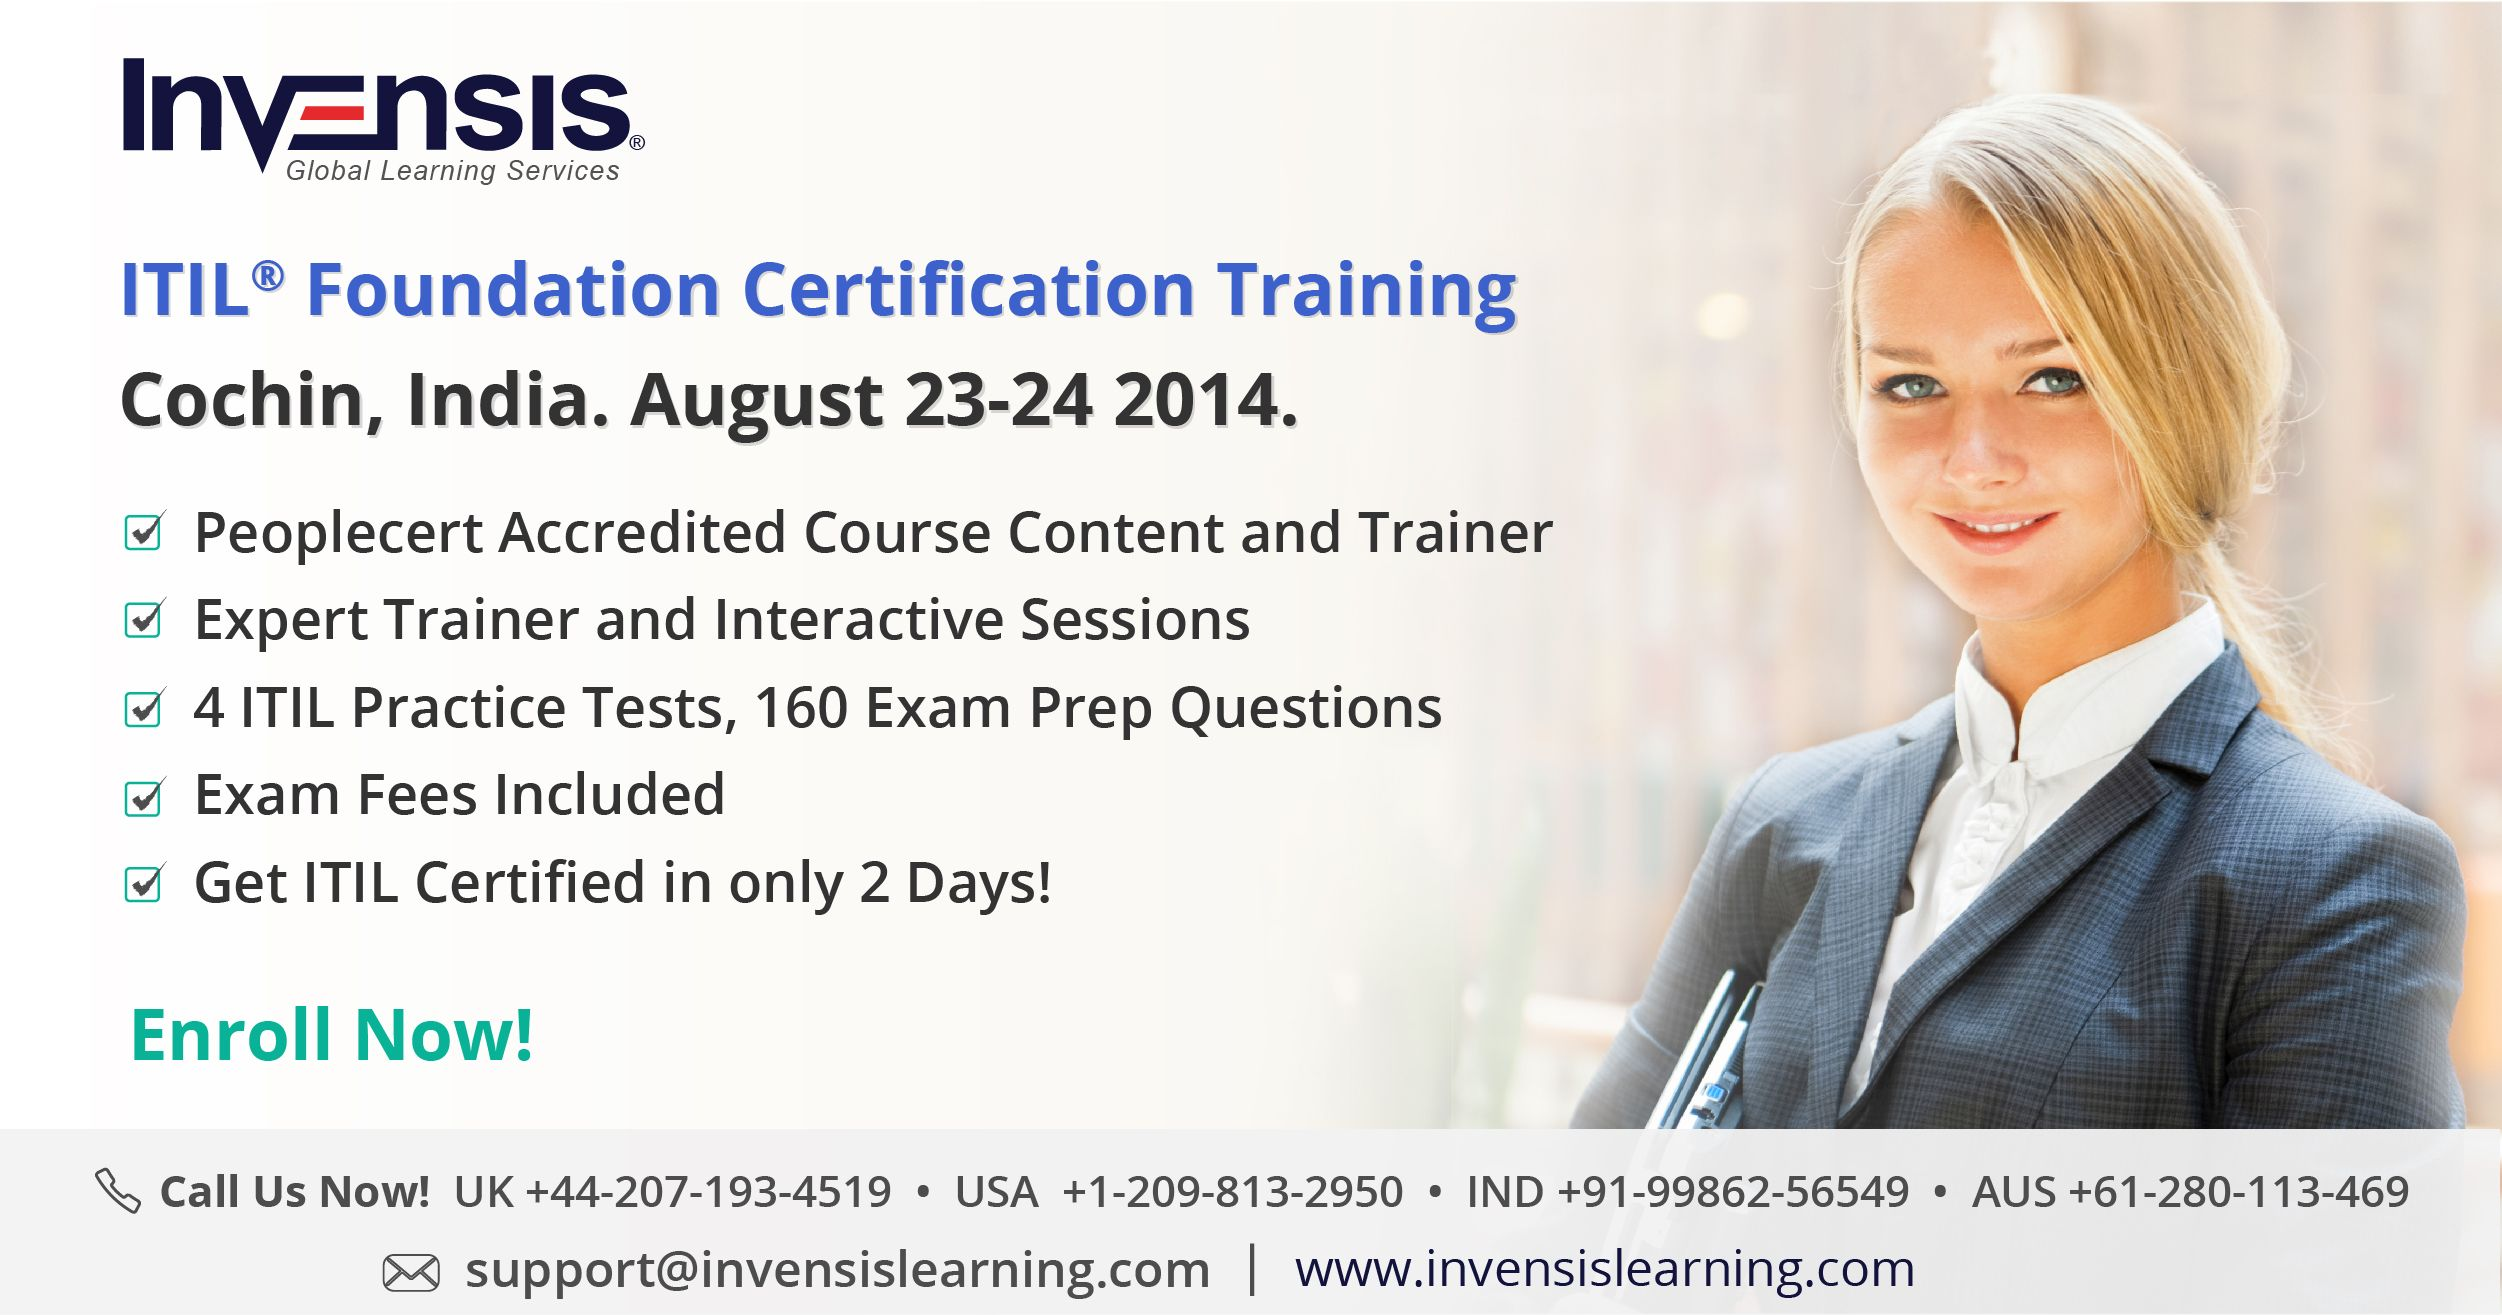 Itil foundation exam certification training in cochin india on visit httpgoozcsepo to enroll or call 91 9986256549 features of our itil foundation certification training peoplecert accredited 4 1betcityfo Gallery